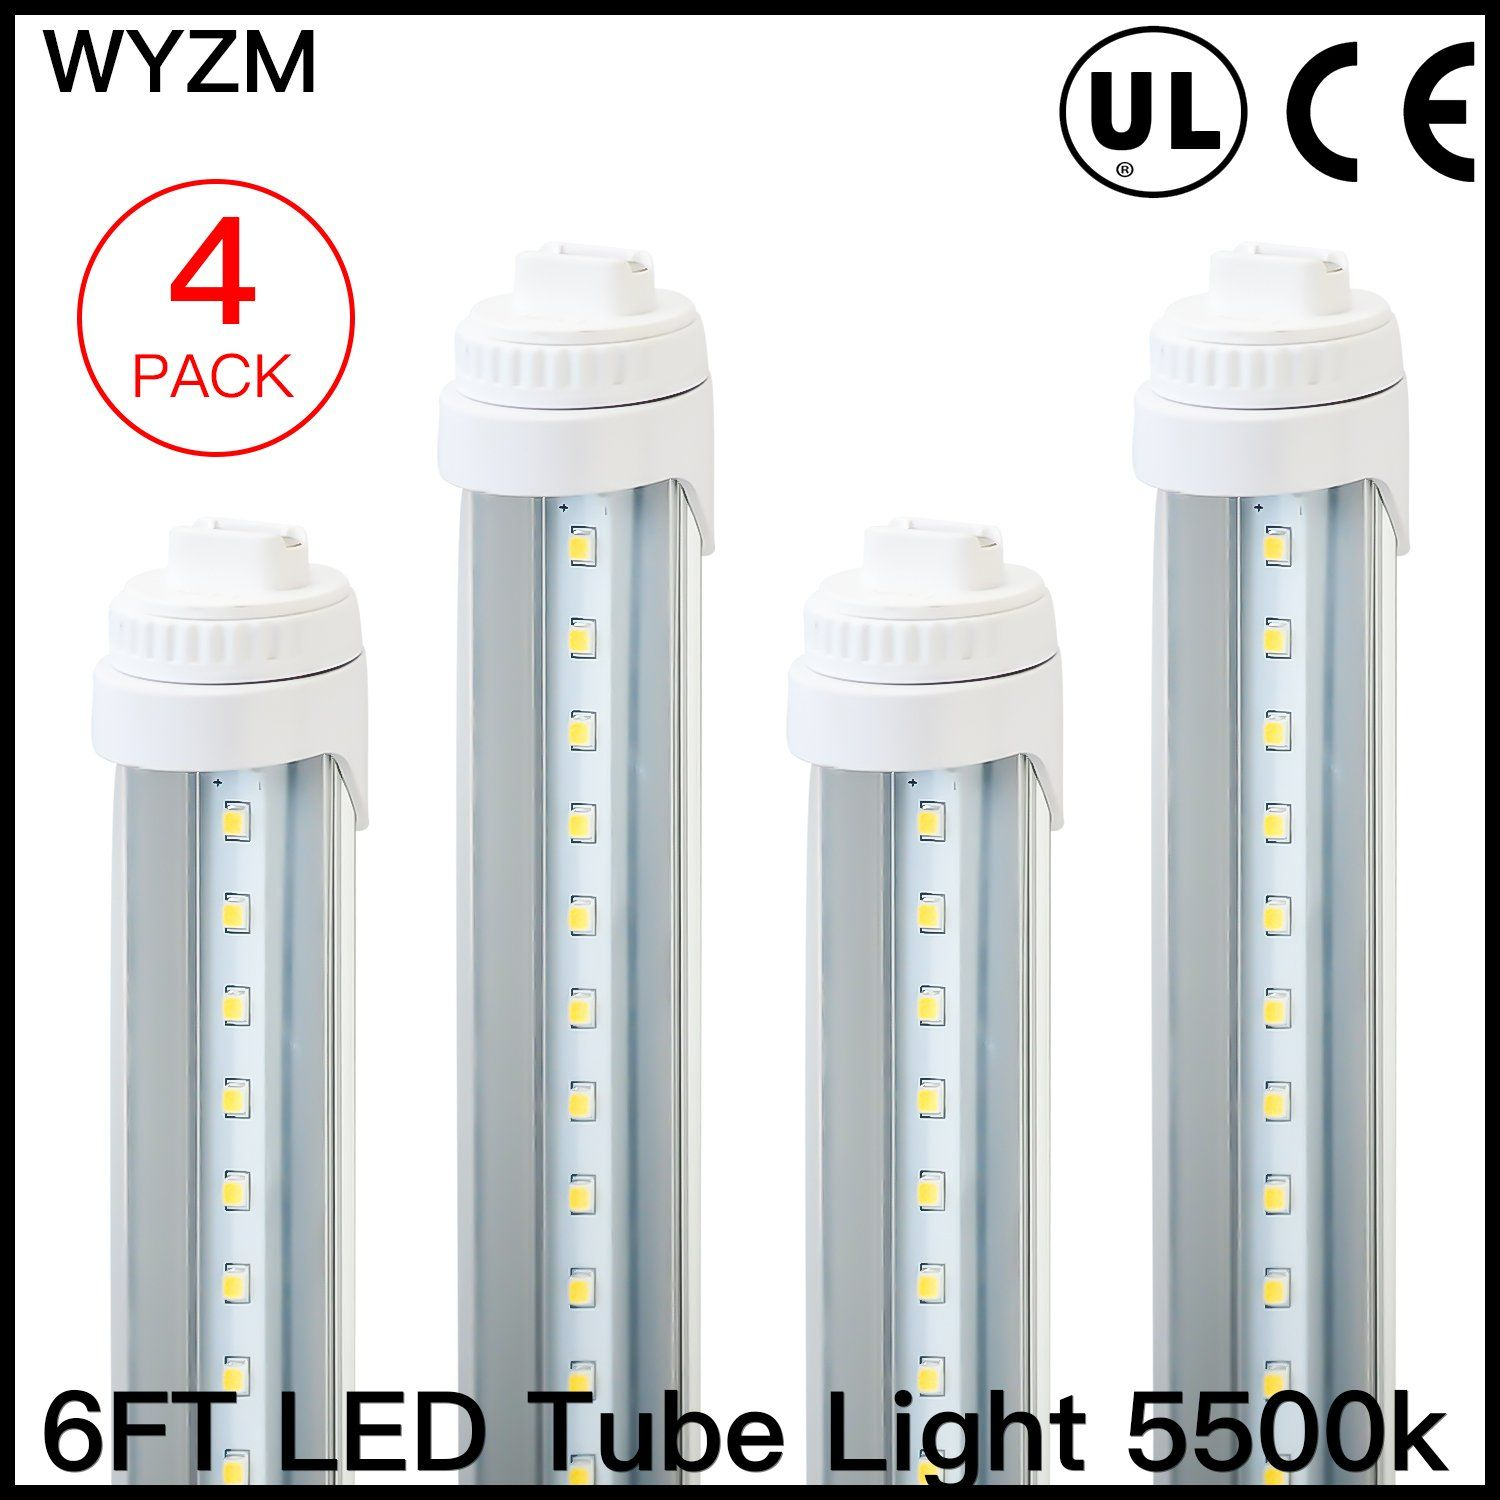 WYZM R17D 6 Feet 30w LED Tube Light Fluorescent Replacement for